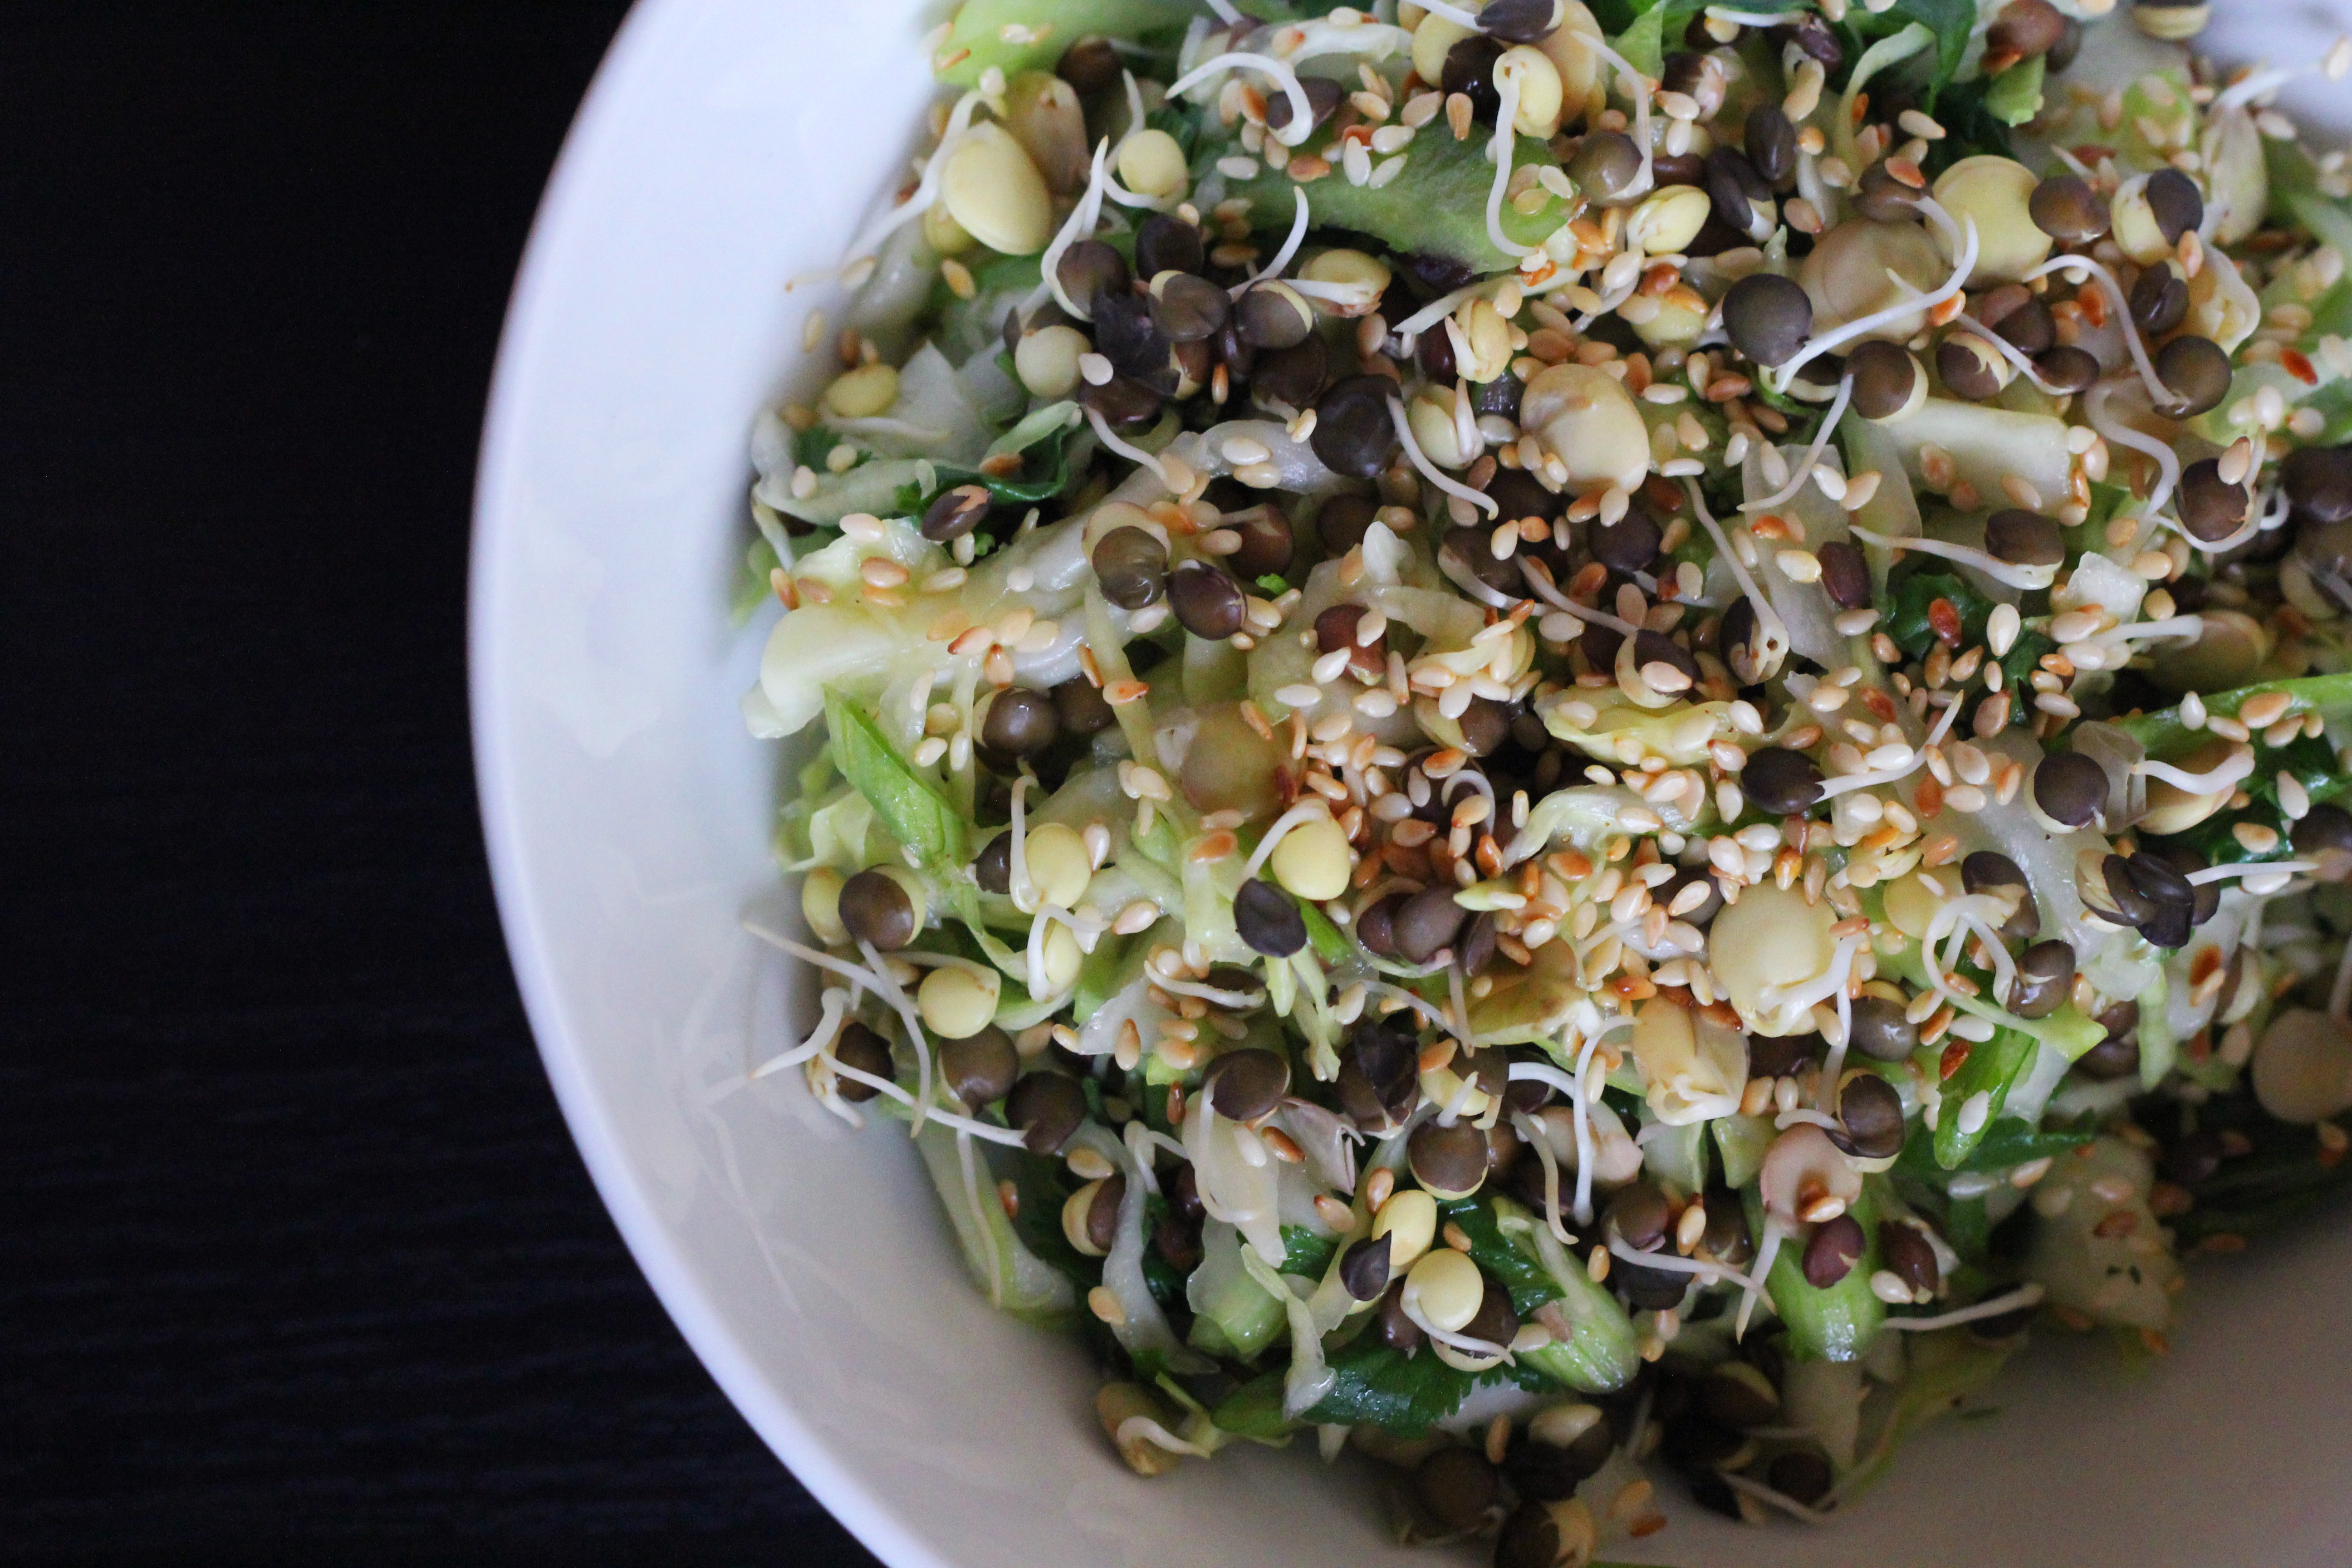 Slaw made with cabbage, sprouted lentils, celery, and a tangy dressing